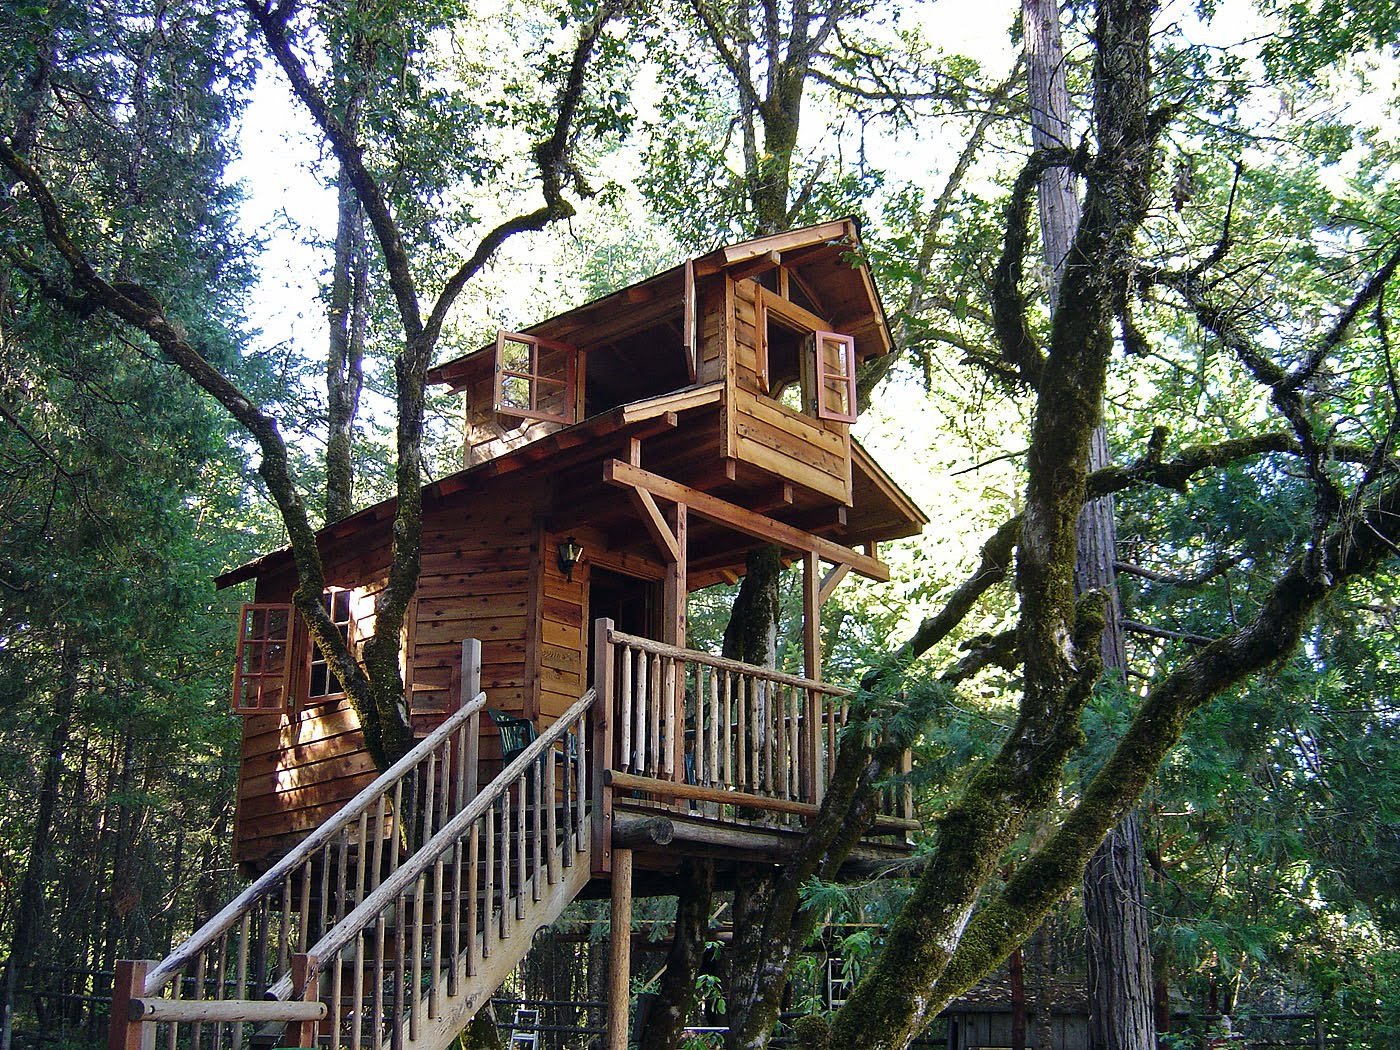 For a bear tree houses Build your home